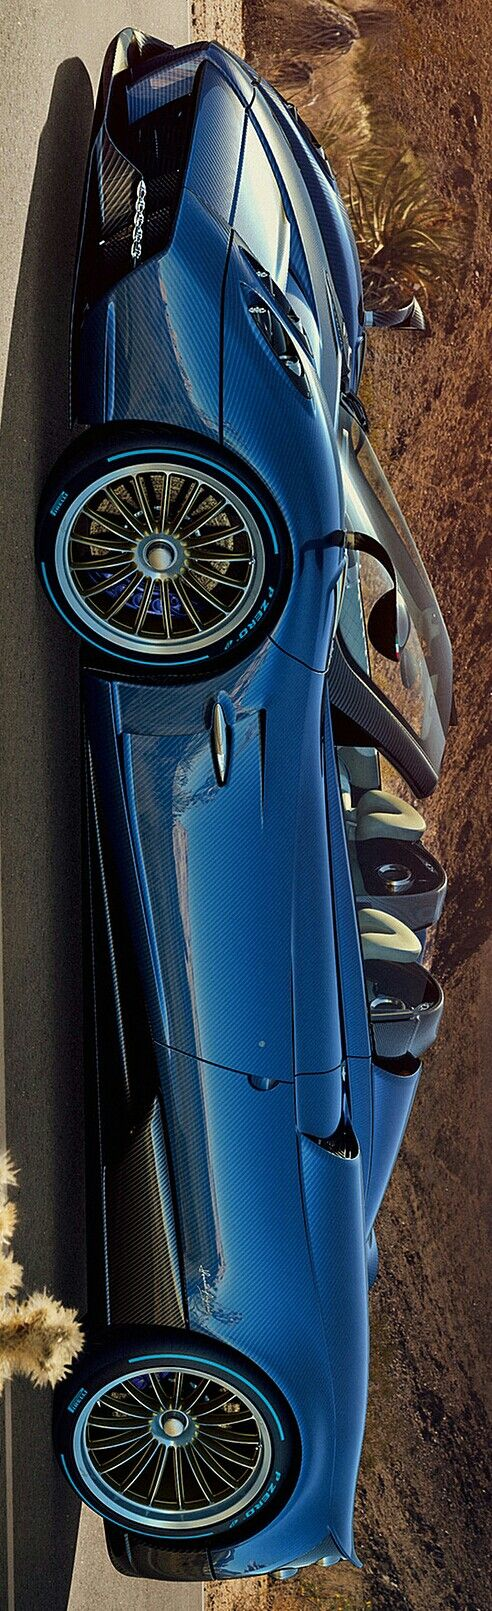 2017 Pagani Huayra Roadster by Levon